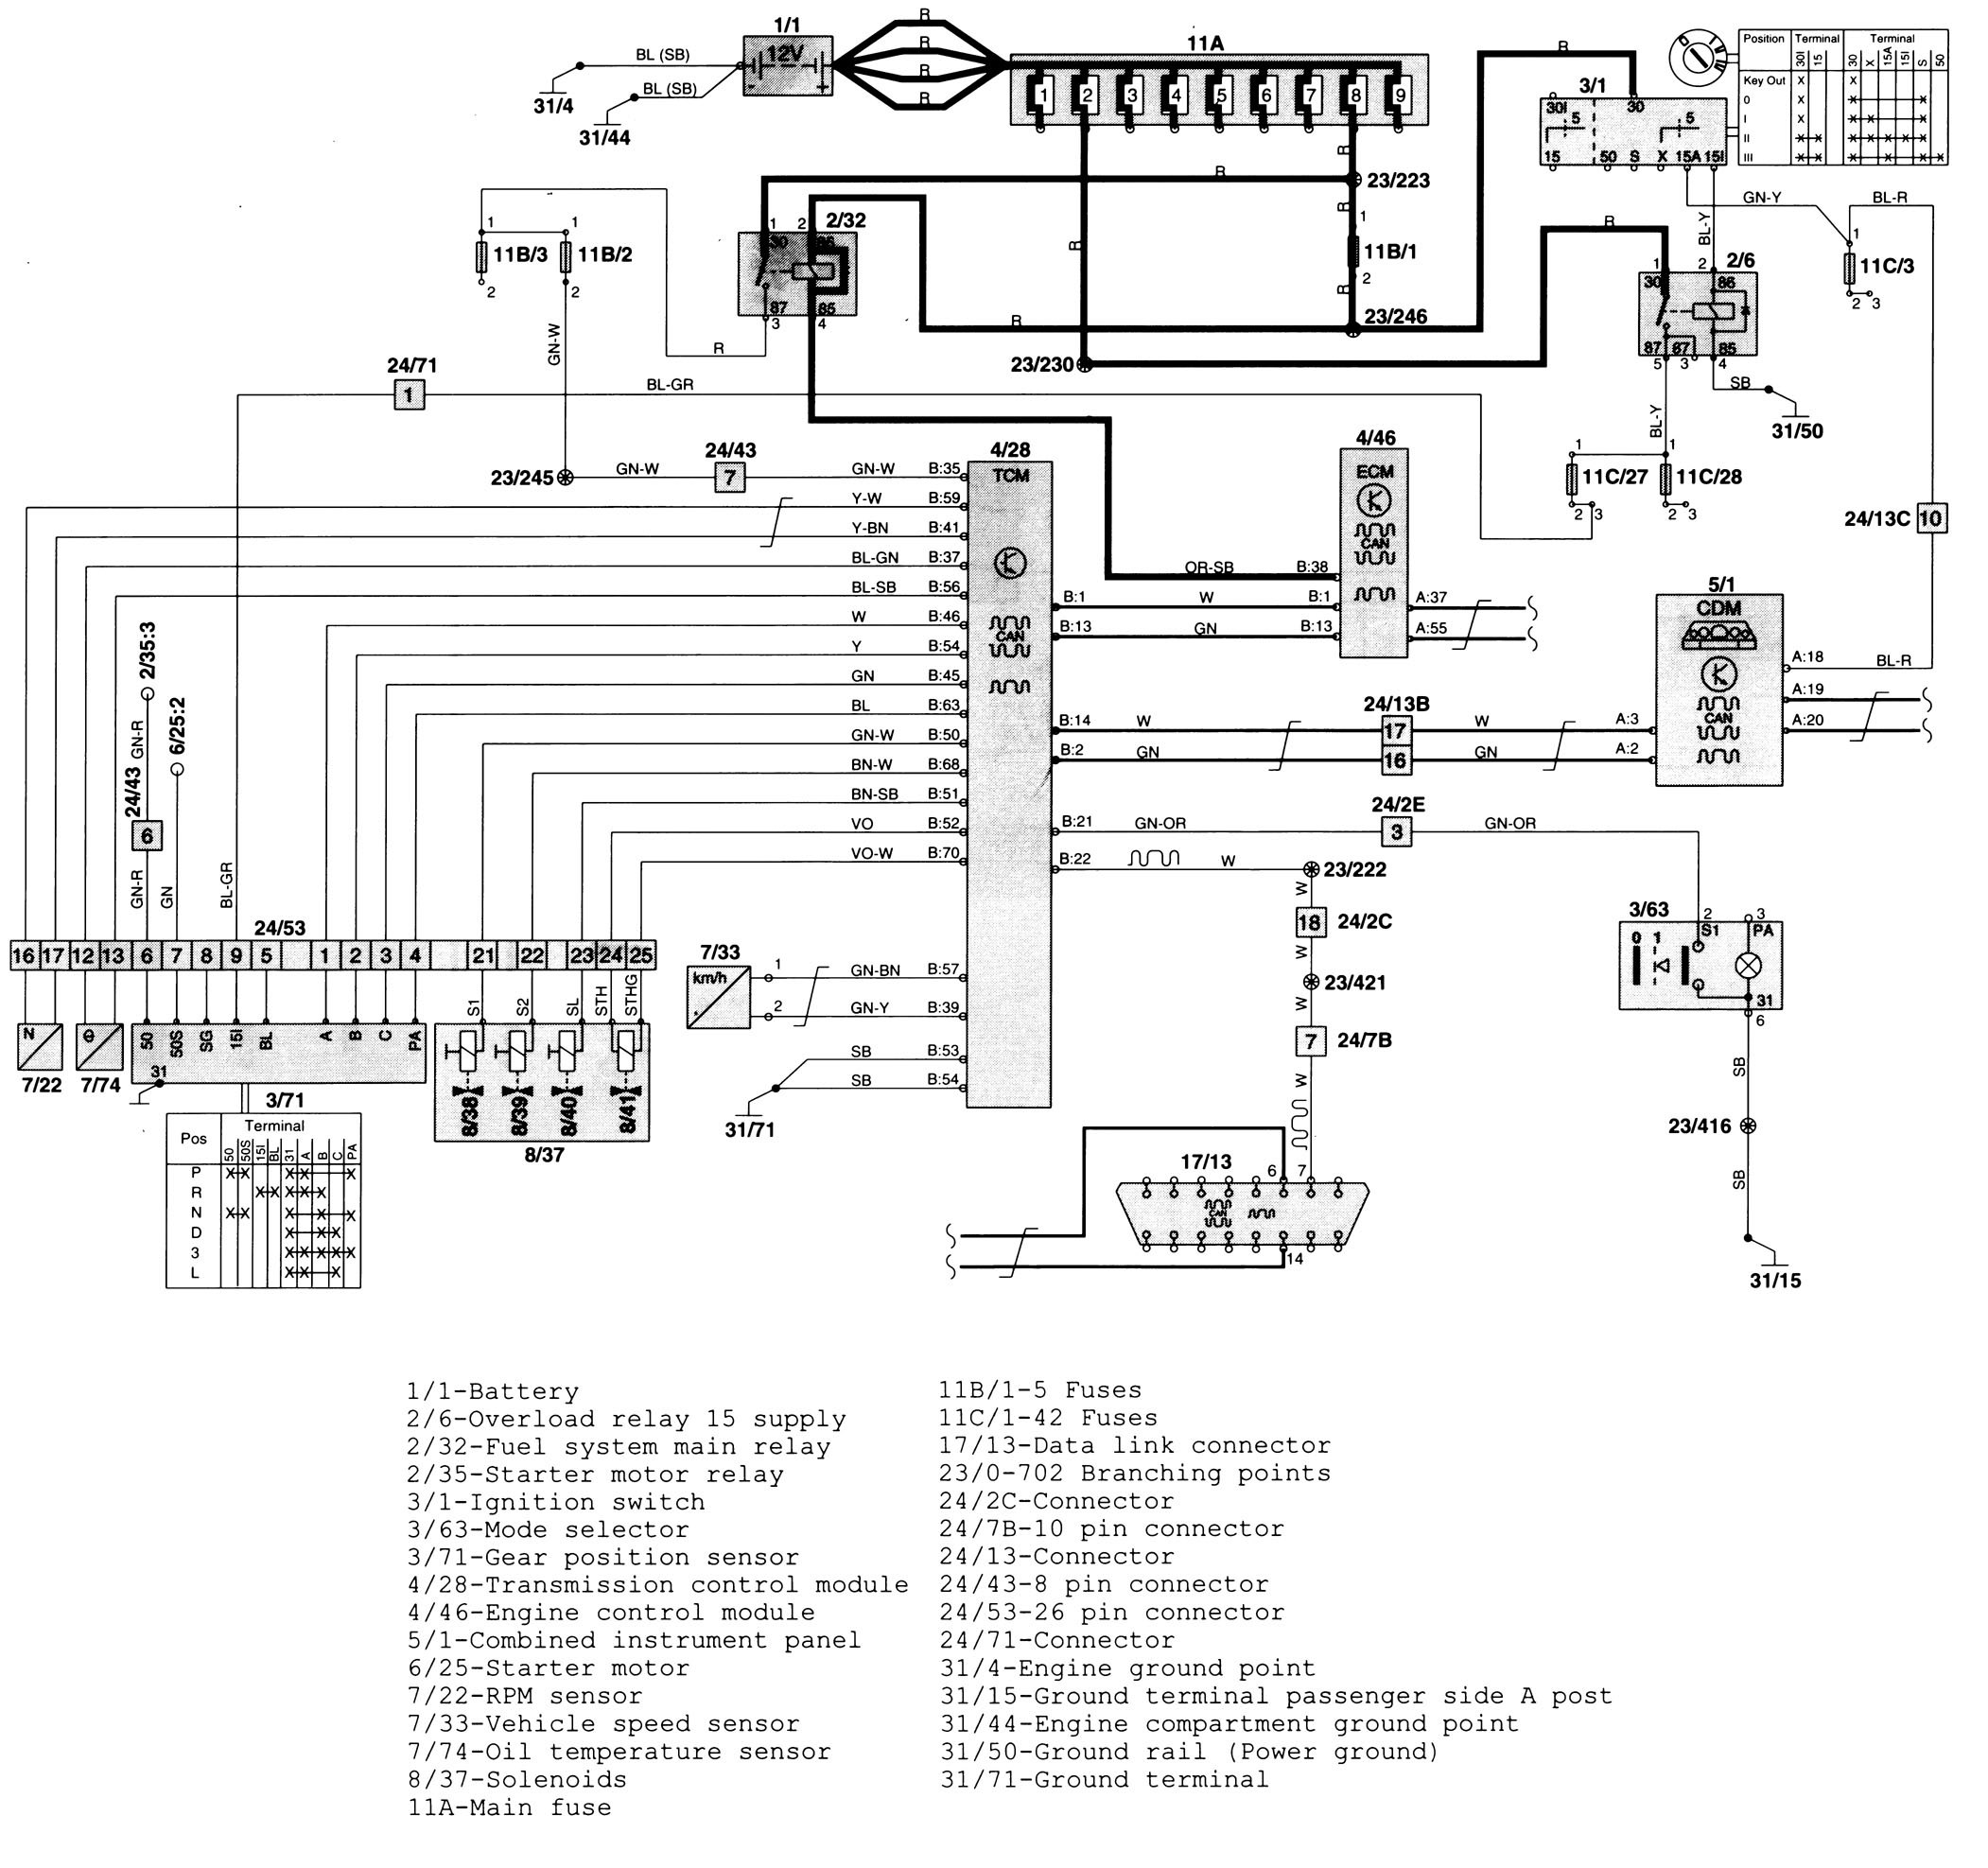 Volvo C70 1999 Wiring Diagrams Transmission Controls Bobcat 331 Diagram